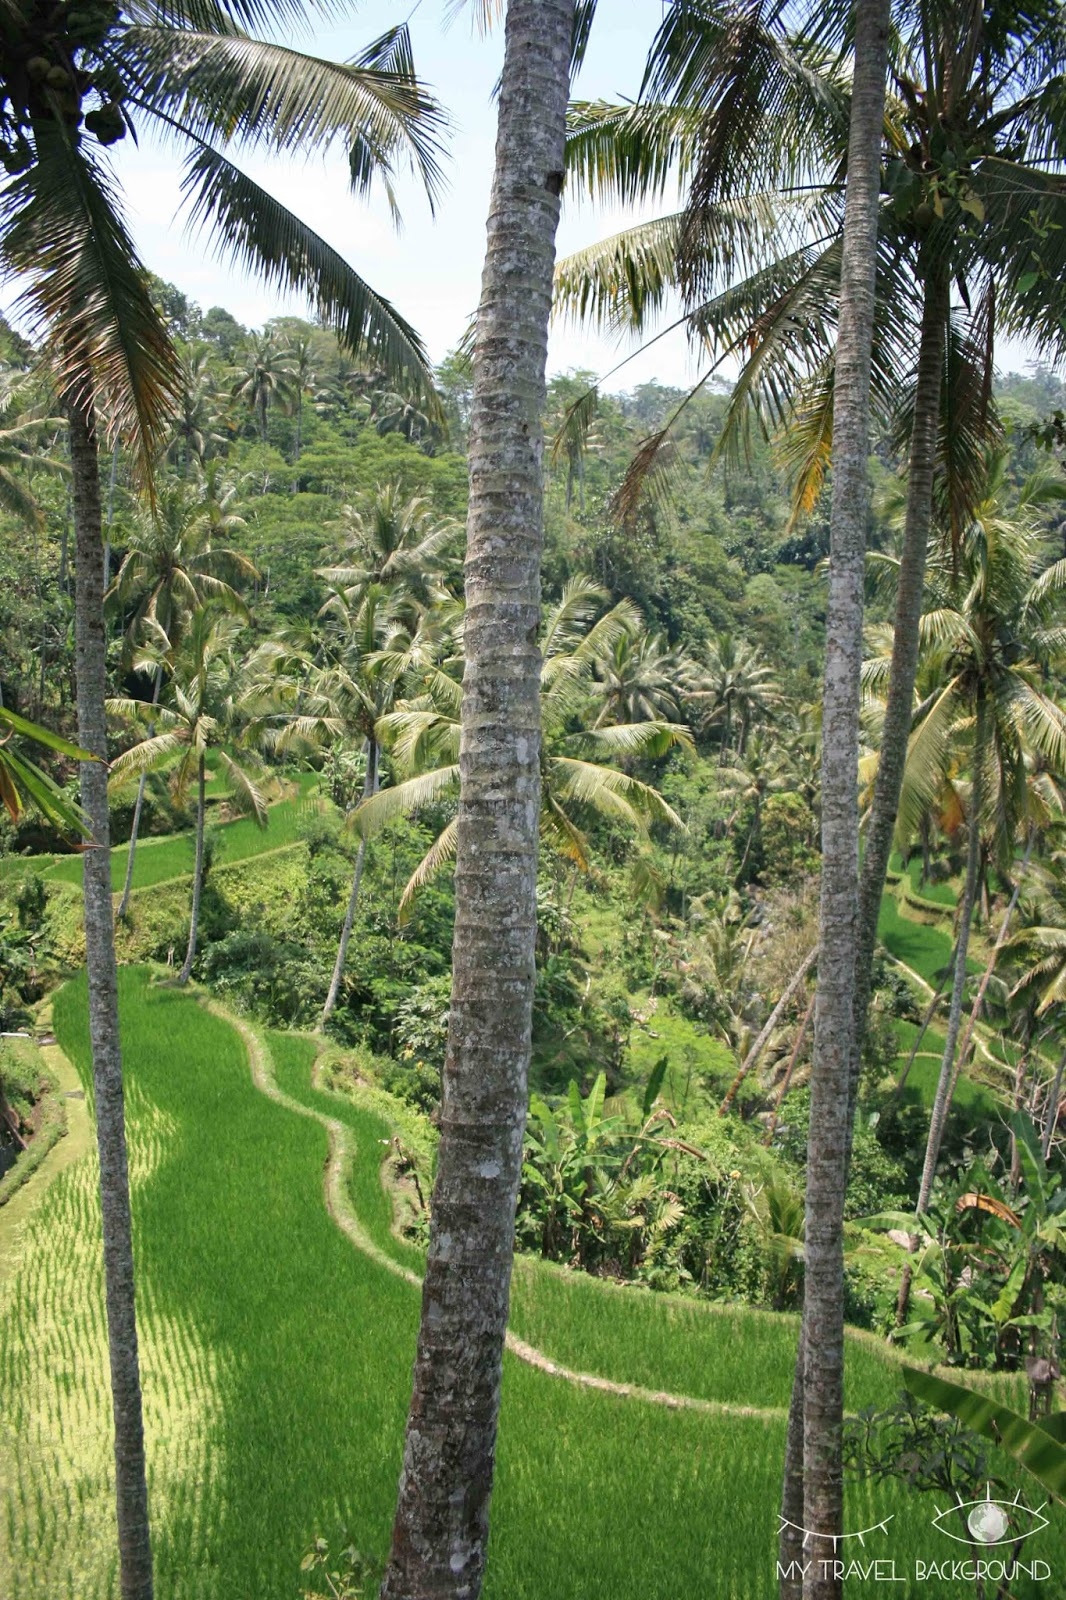 My Travel Background : le temple Gunung Kawi à Ubud, Bali, Indonésie